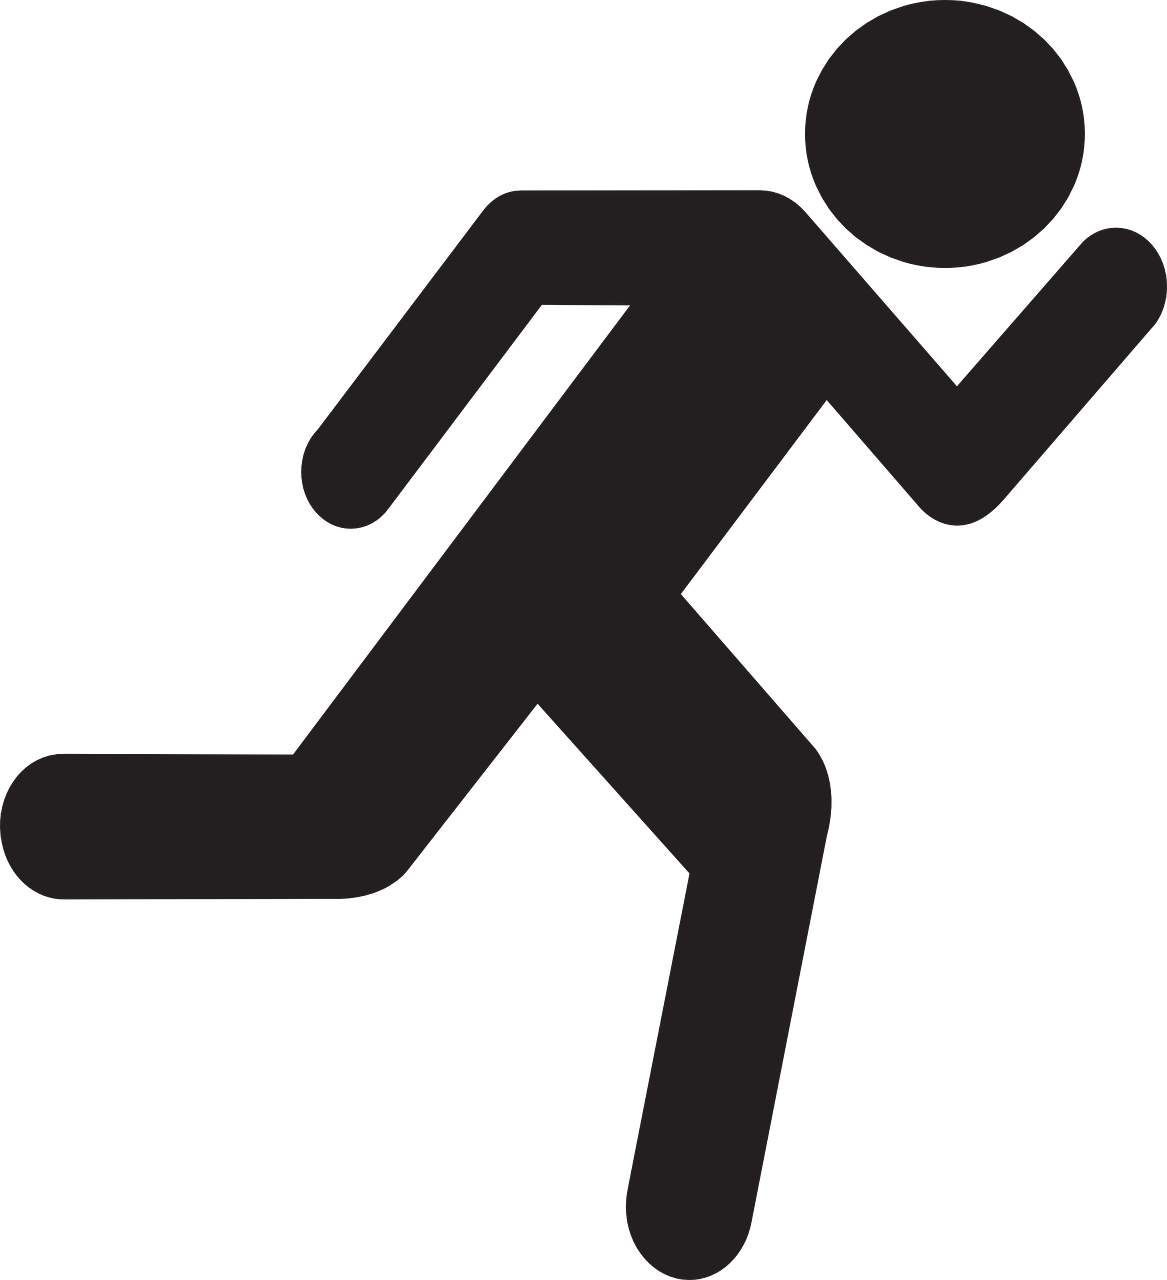 PNG HD Of Stick Figures - 130067